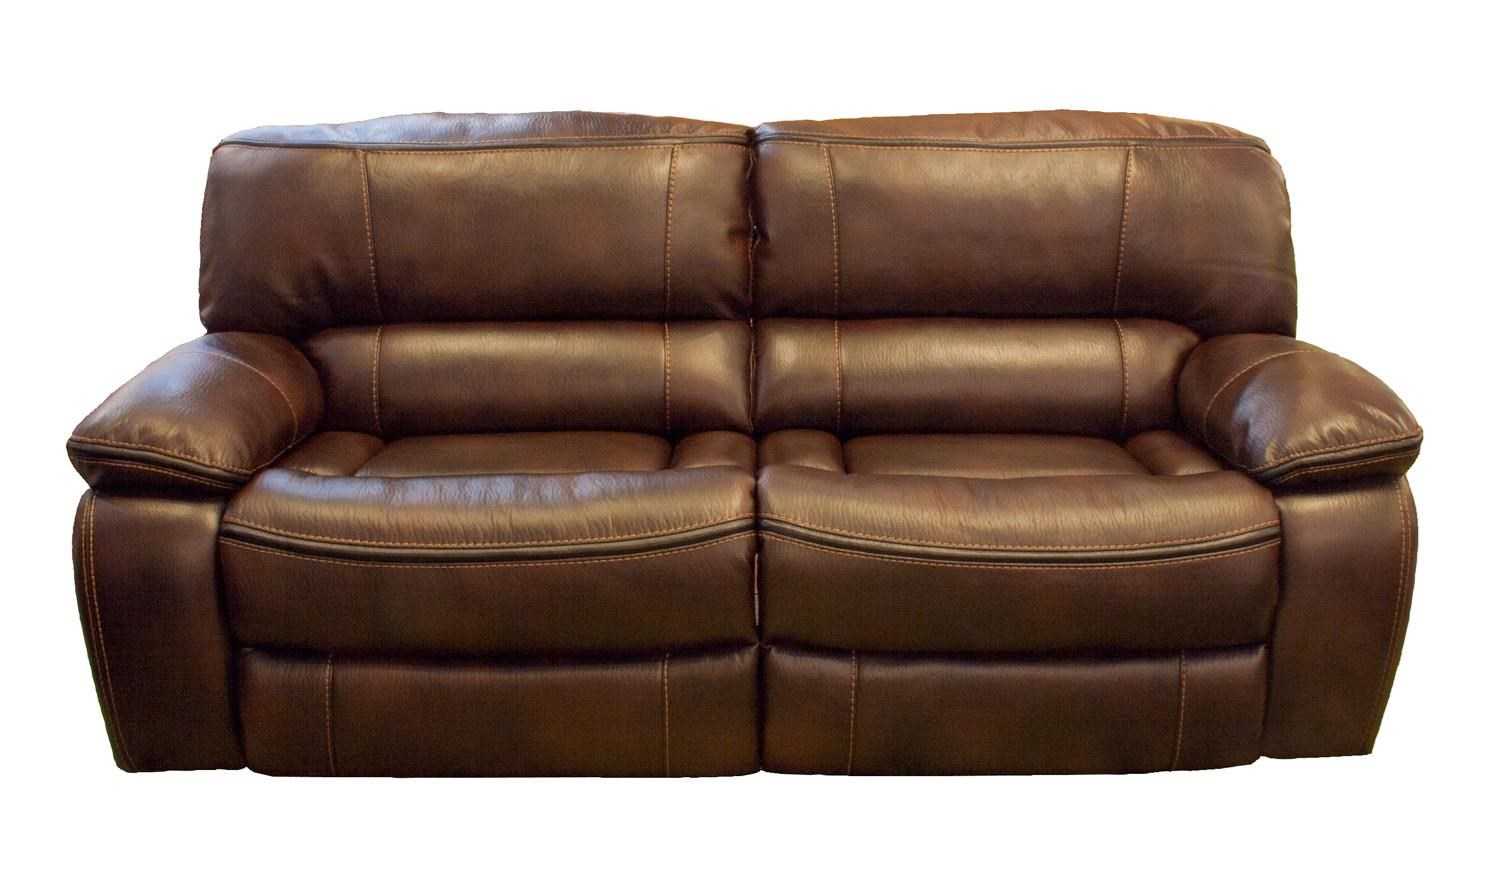 Kian 4400 Dual Reclining Sofa - Item Number: 4400-3R